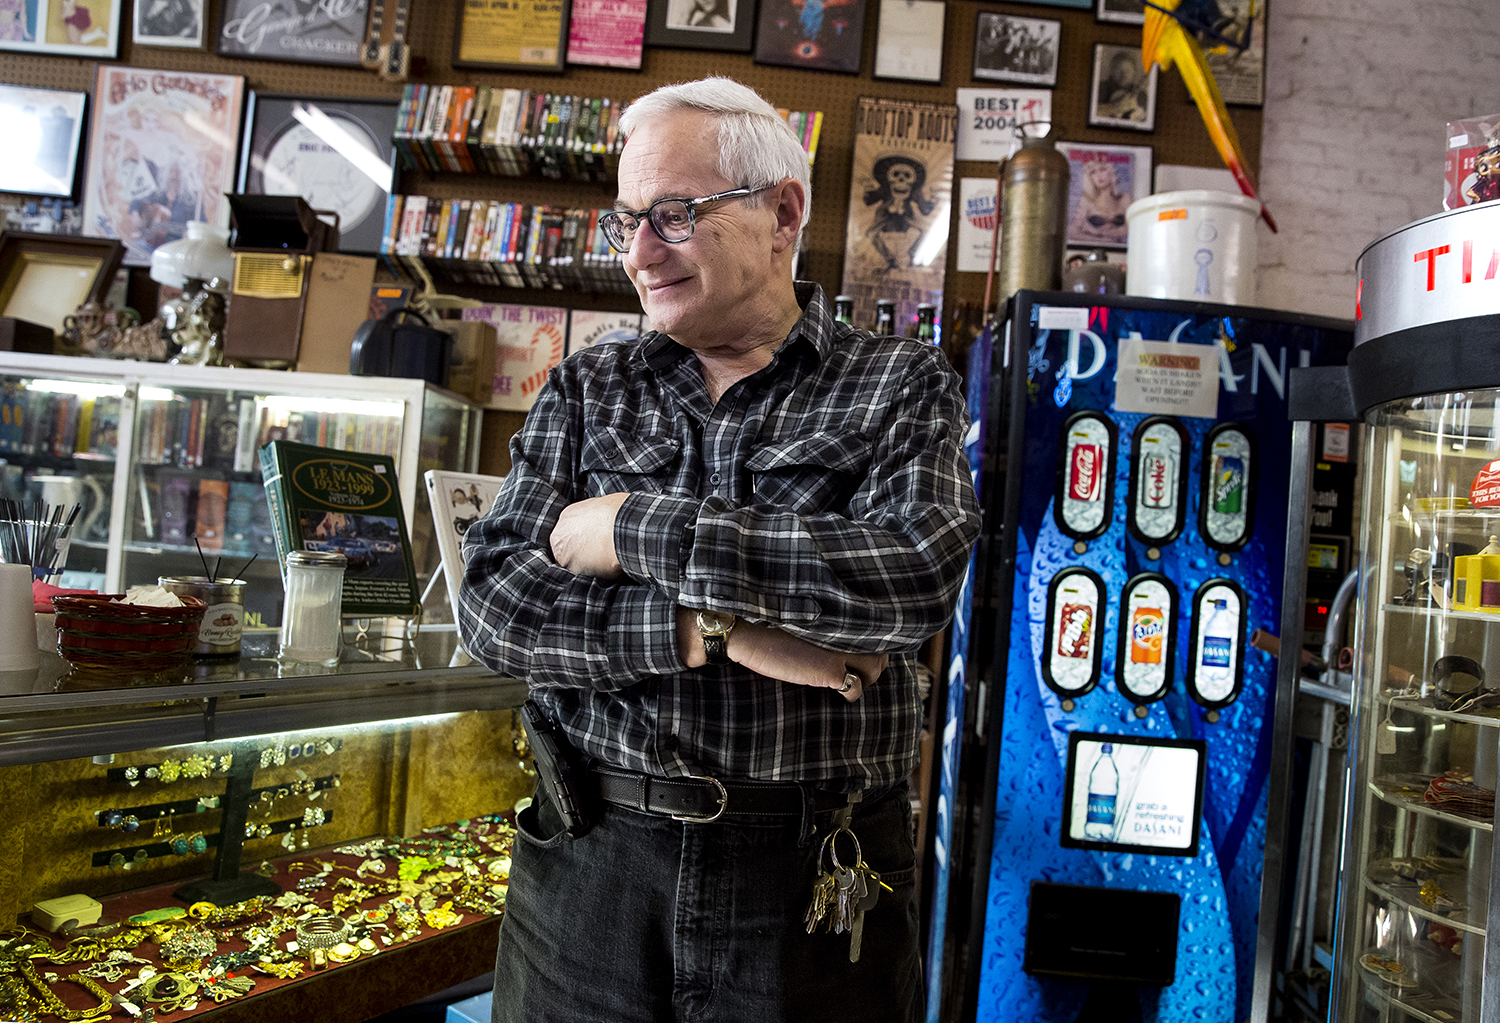 """I'm going to hate not being down here,"" says Mark Kessler, who with his brother Gary owns Recycled Records at 625 E. Adams St. in Springfield. Mark Kessler says he would like to retire and the brothers are looking for a buyer. The two began selling used records 40 years ago inside the furniture store founded by their grandparents in 1910. [Rich Saal/The State Journal-Register]"